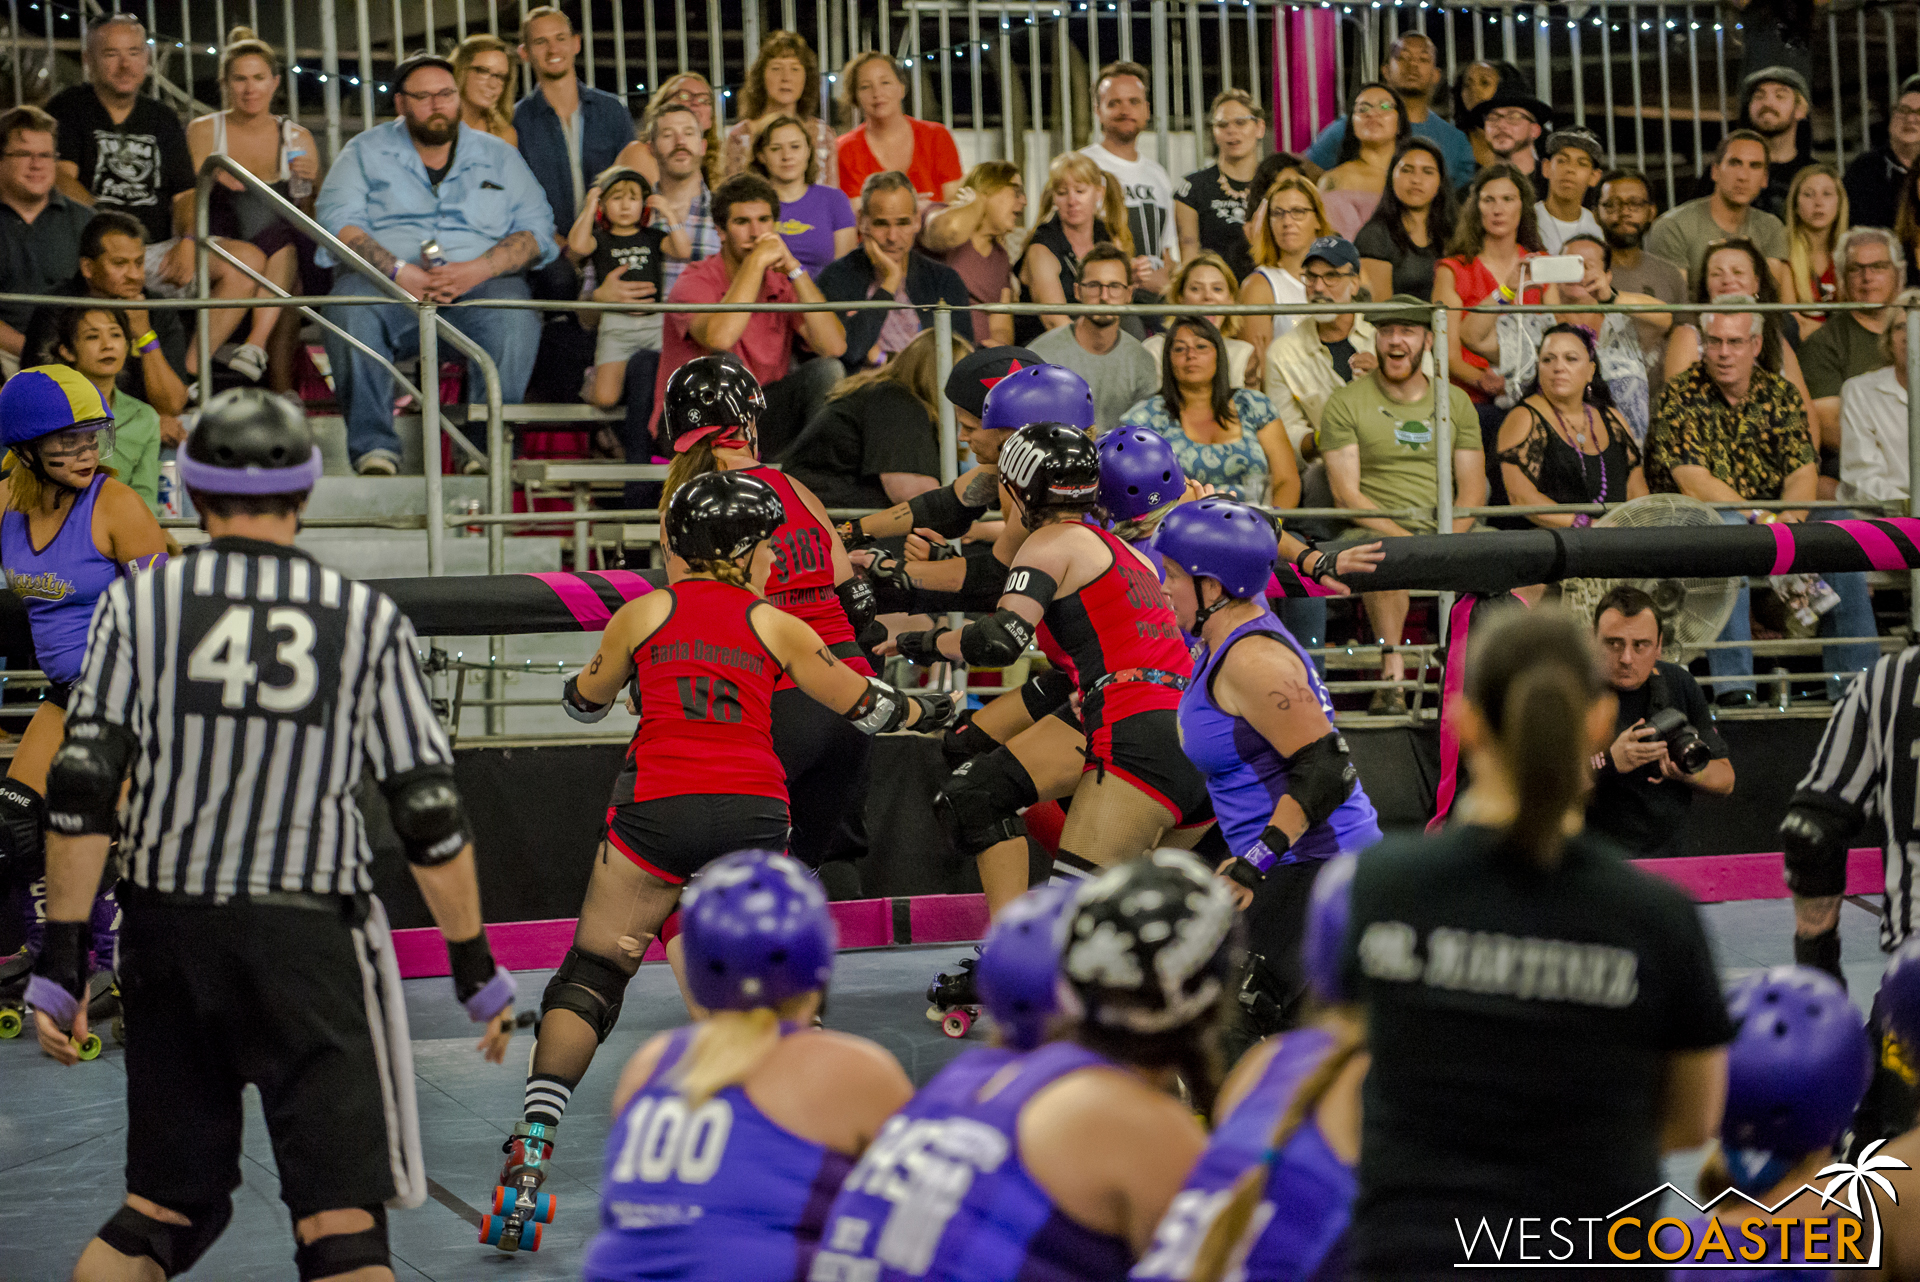 Fans watch as the ladies tussle around a turn.